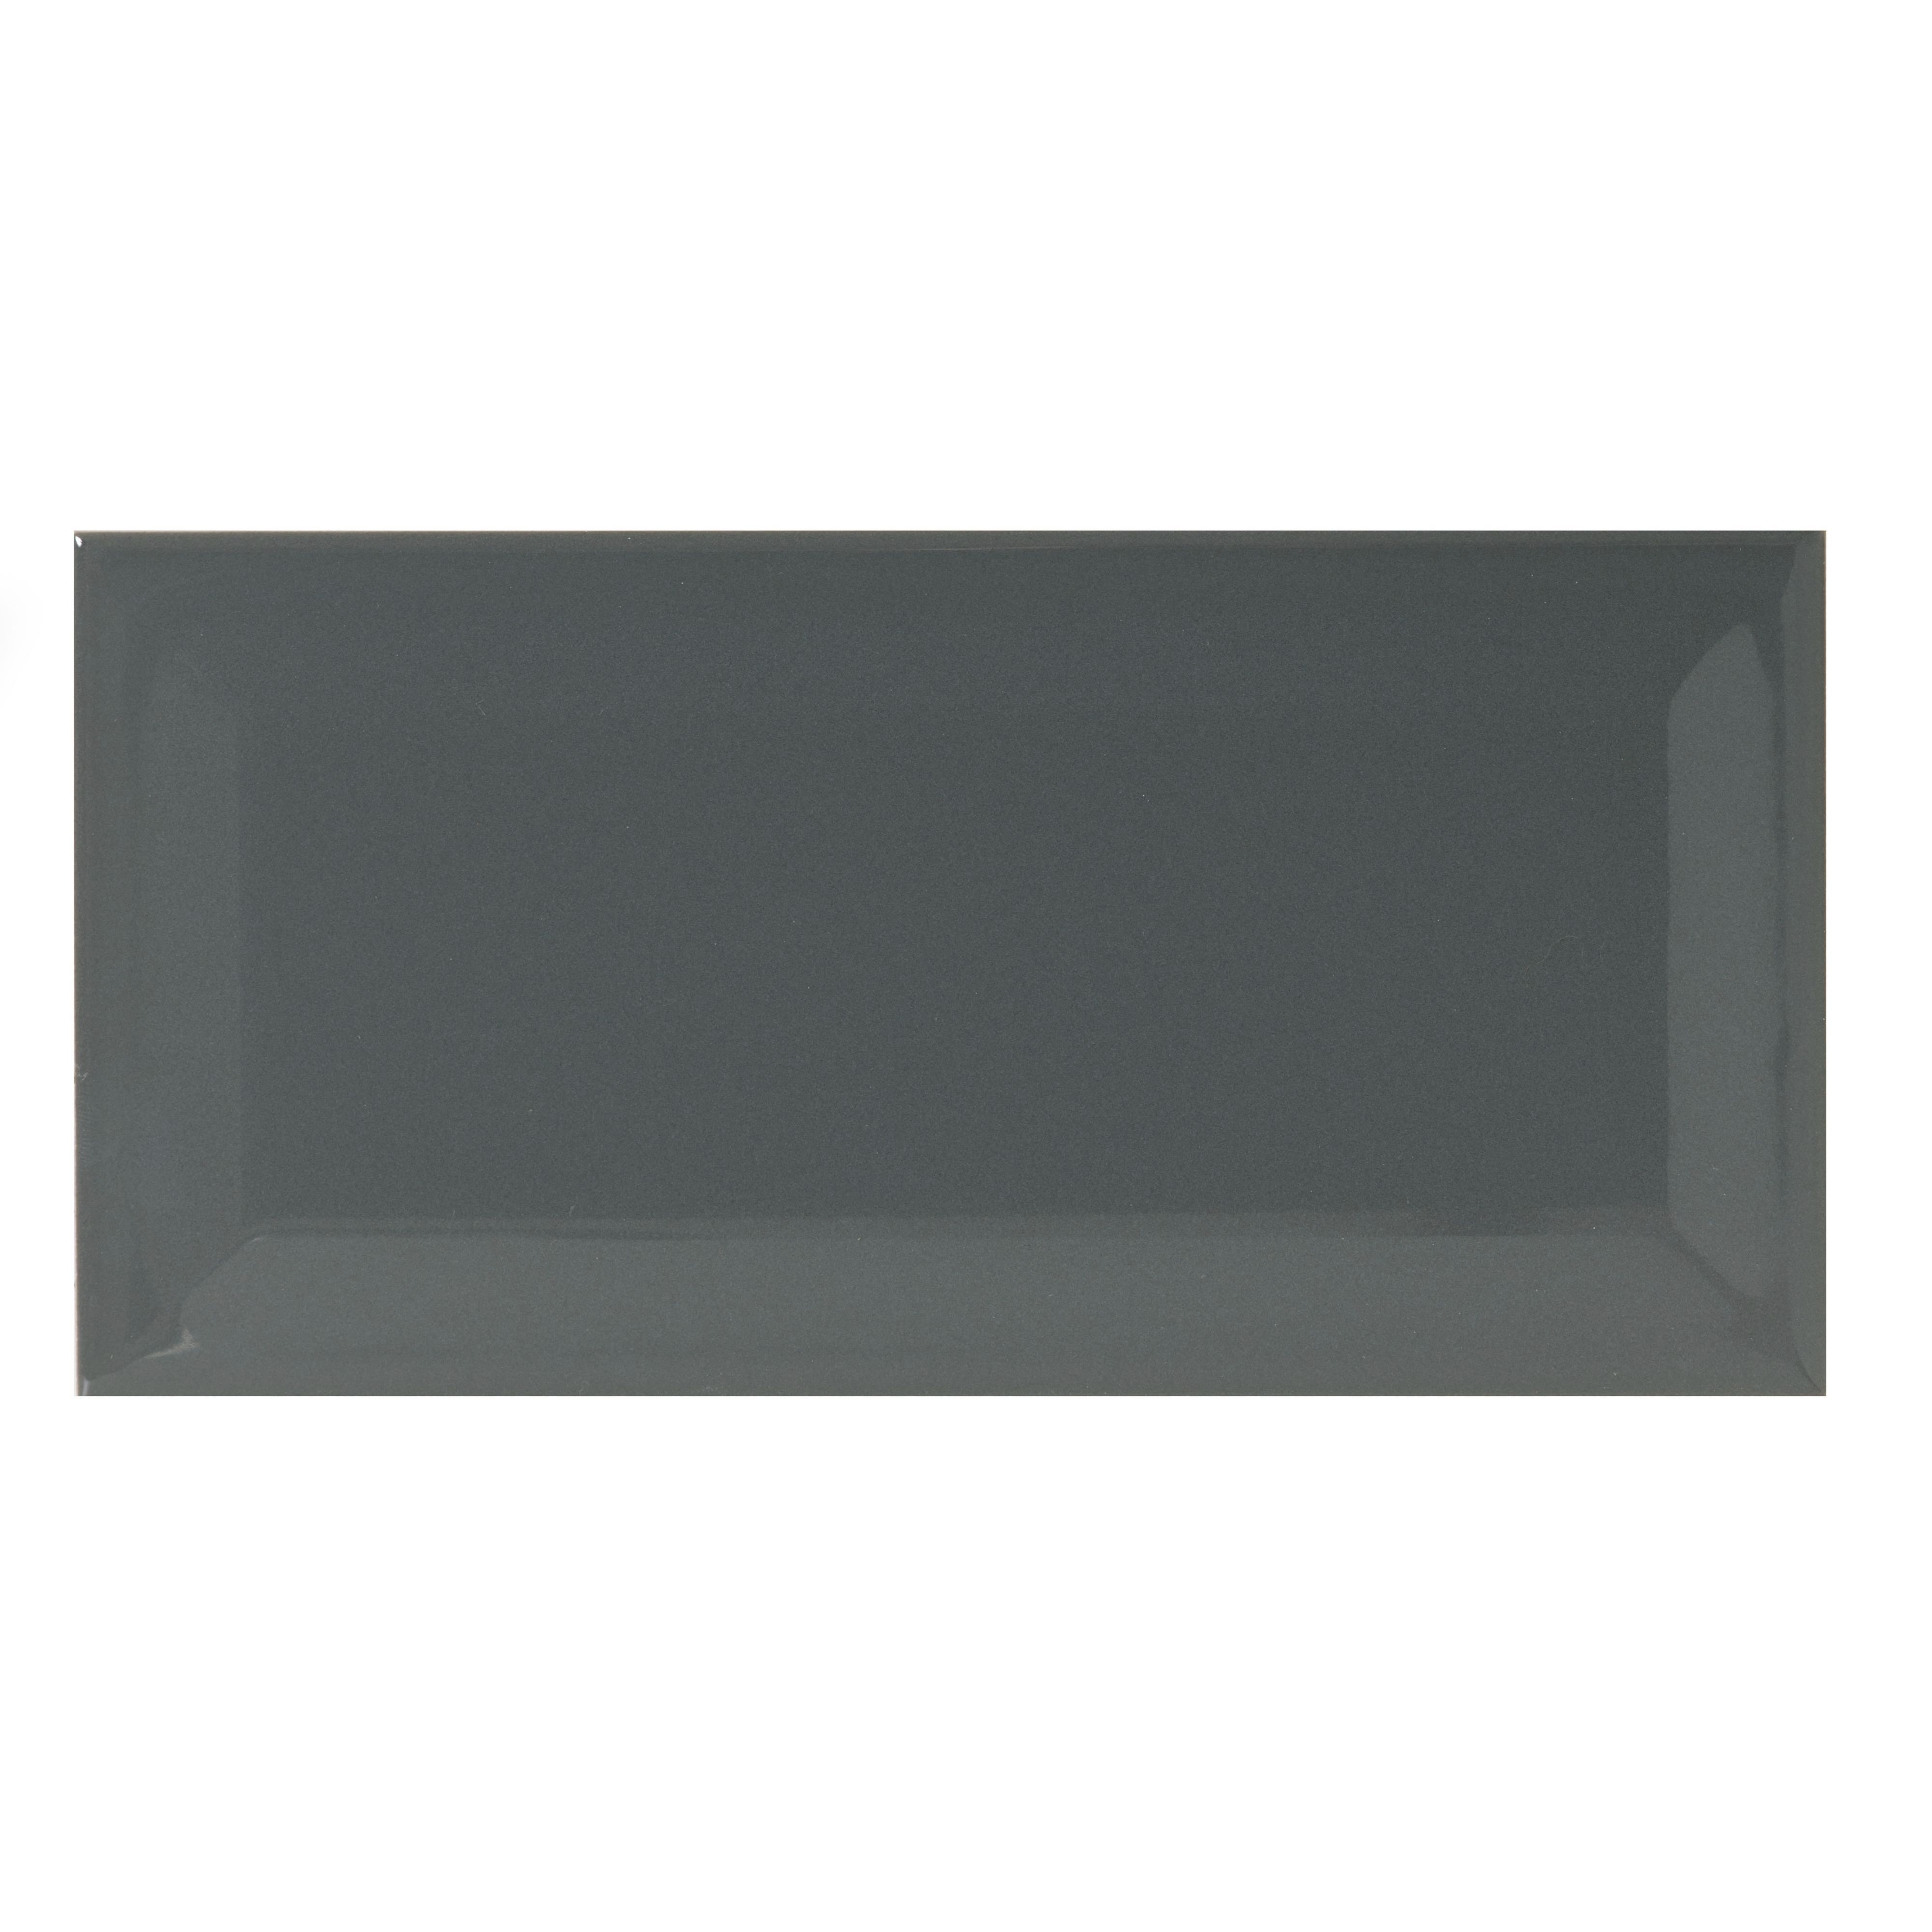 Bevelled Edge Charcoal Gloss Bevelled Edge Ceramic Wall Tile, Pack Of 50, (l)200mm (w)100mm